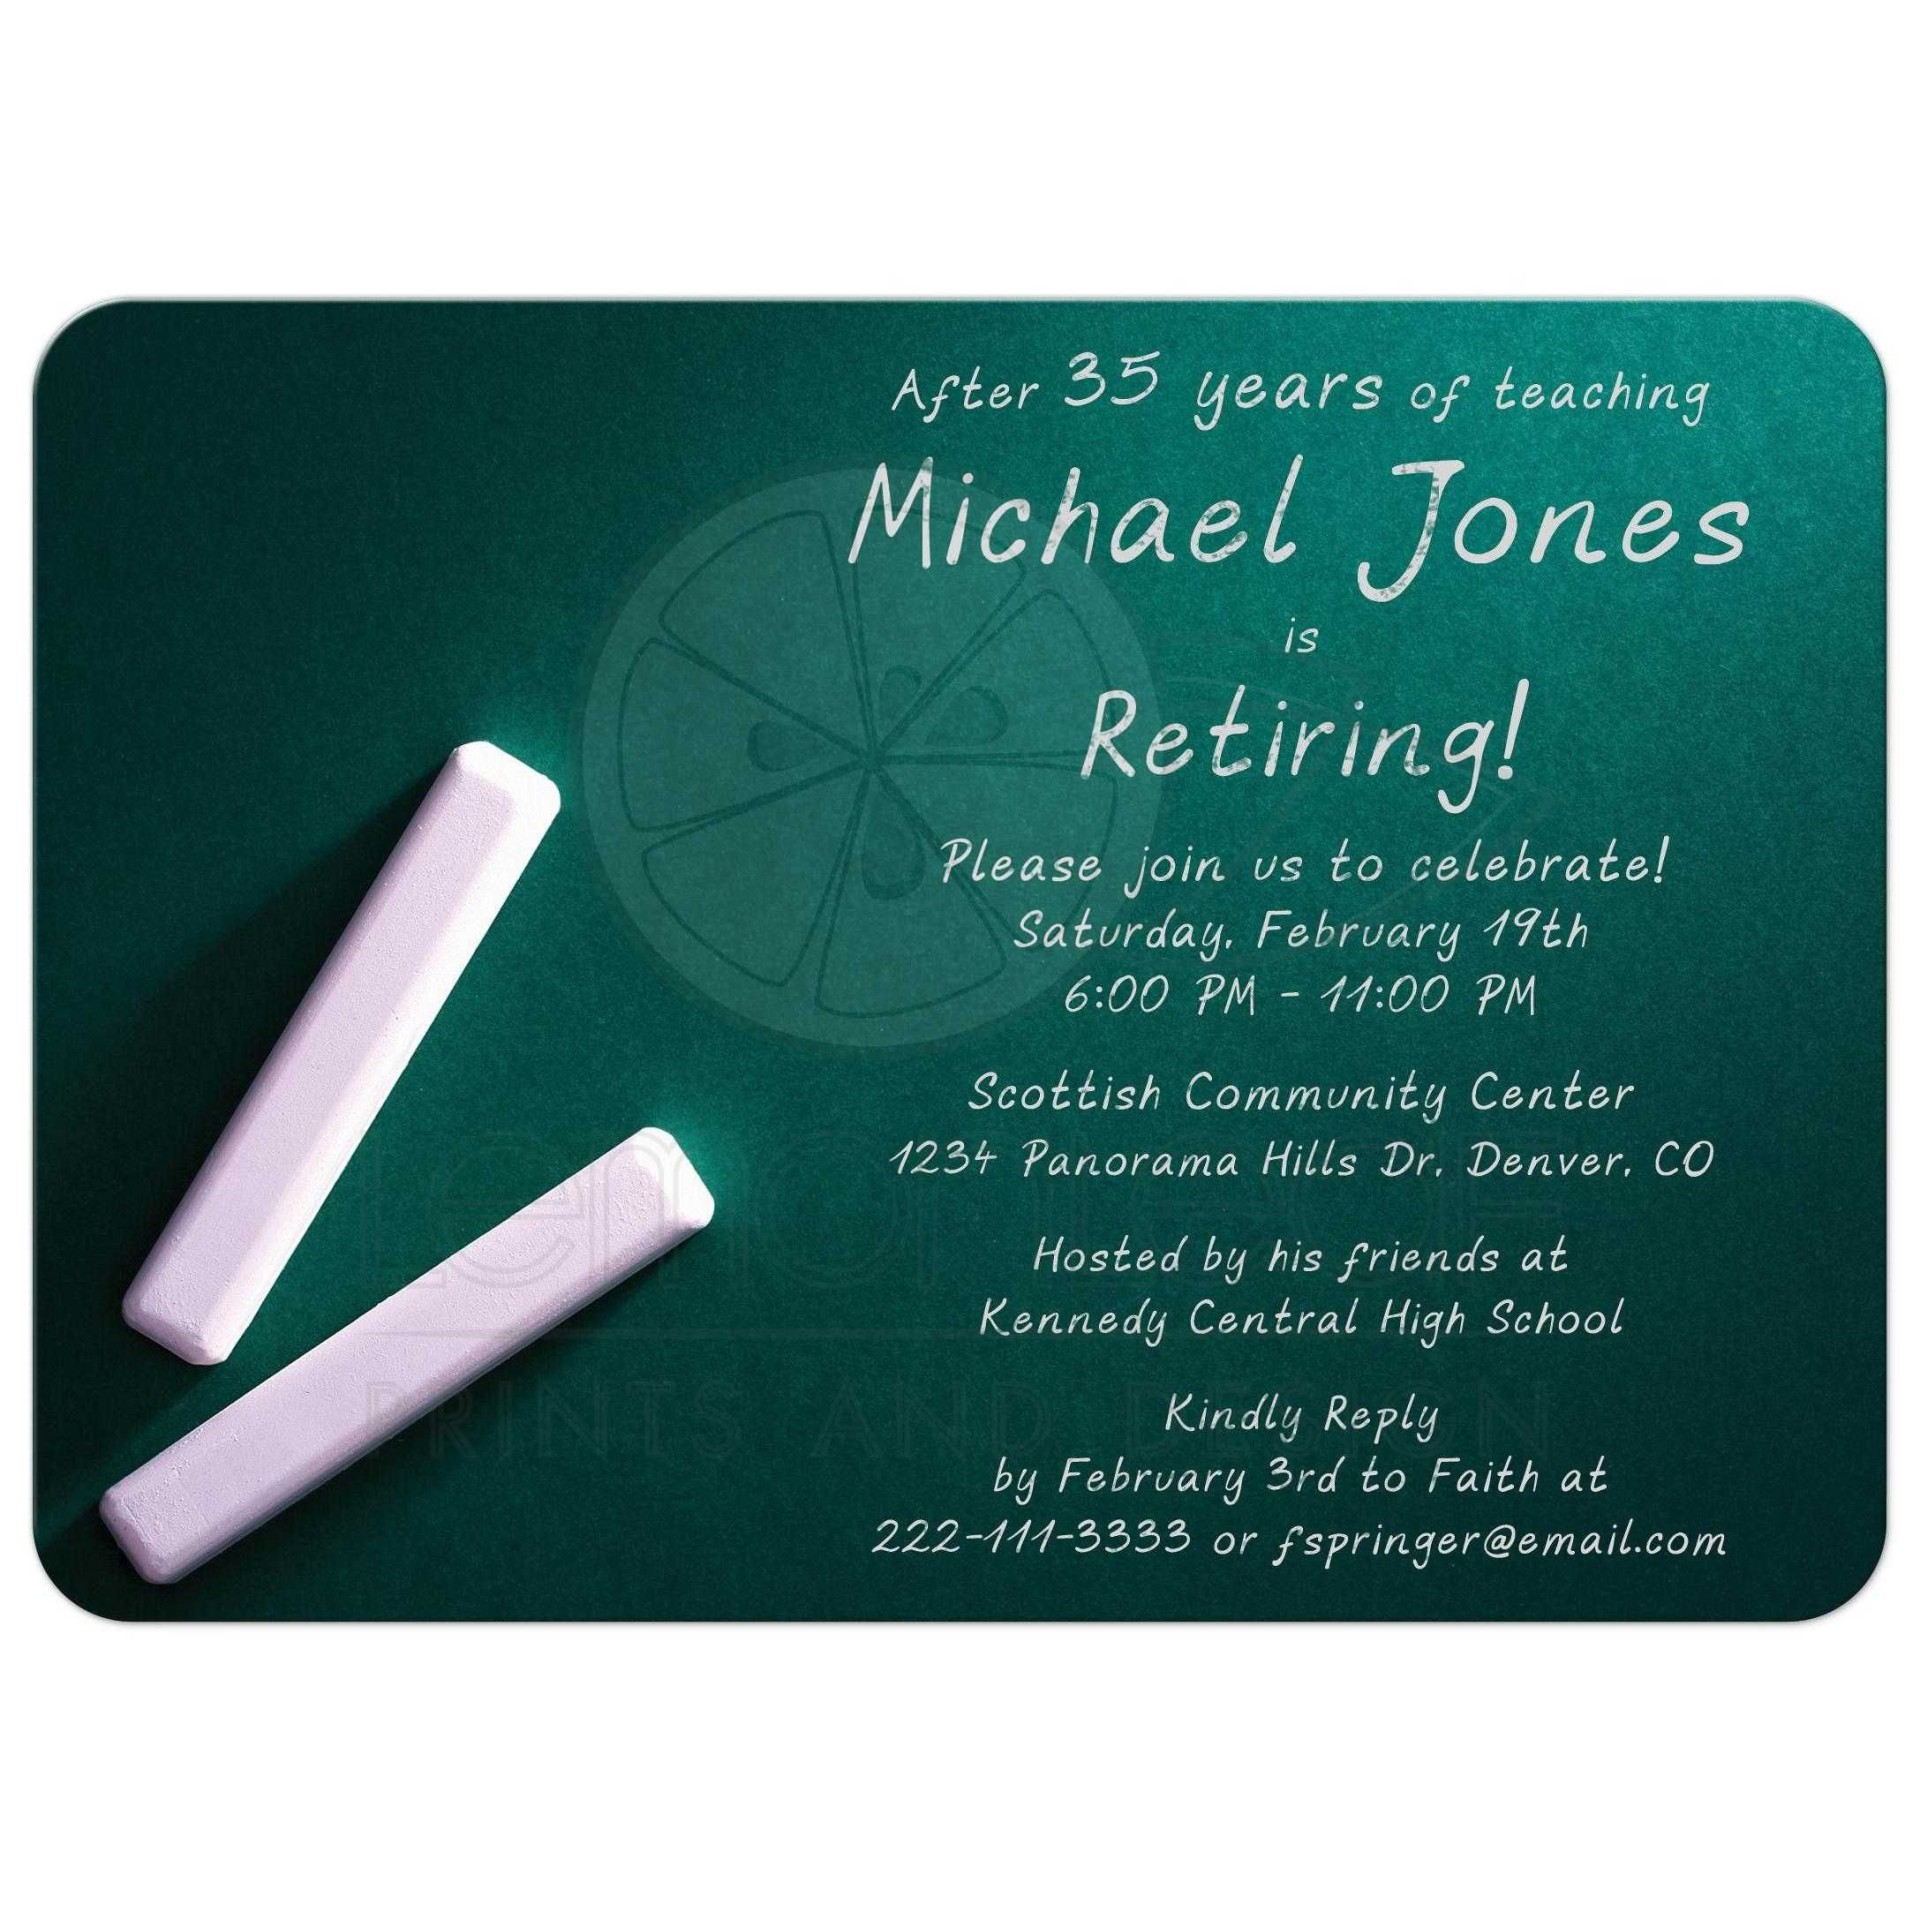 002 Excellent Retirement Party Invitation Template High Def  Templates For Free Nurse M Word1920